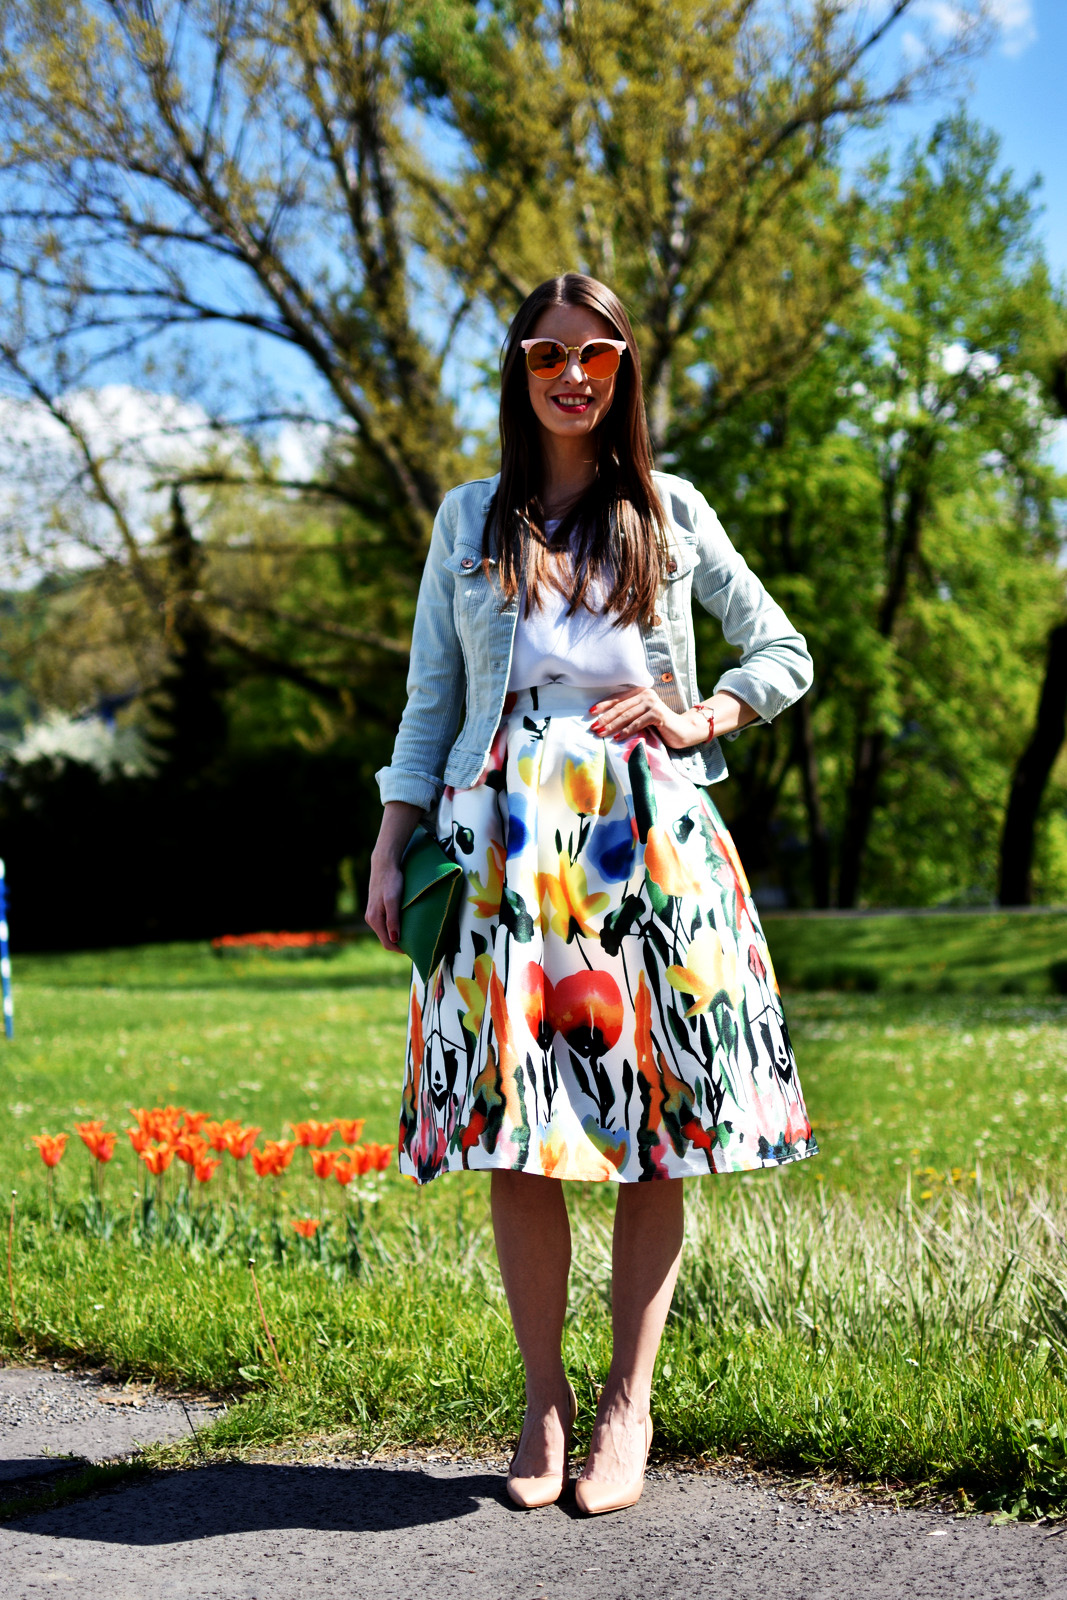 http://www.mademoiselleiva.com/2016/05/floral-skirt-with-green-clutch.html